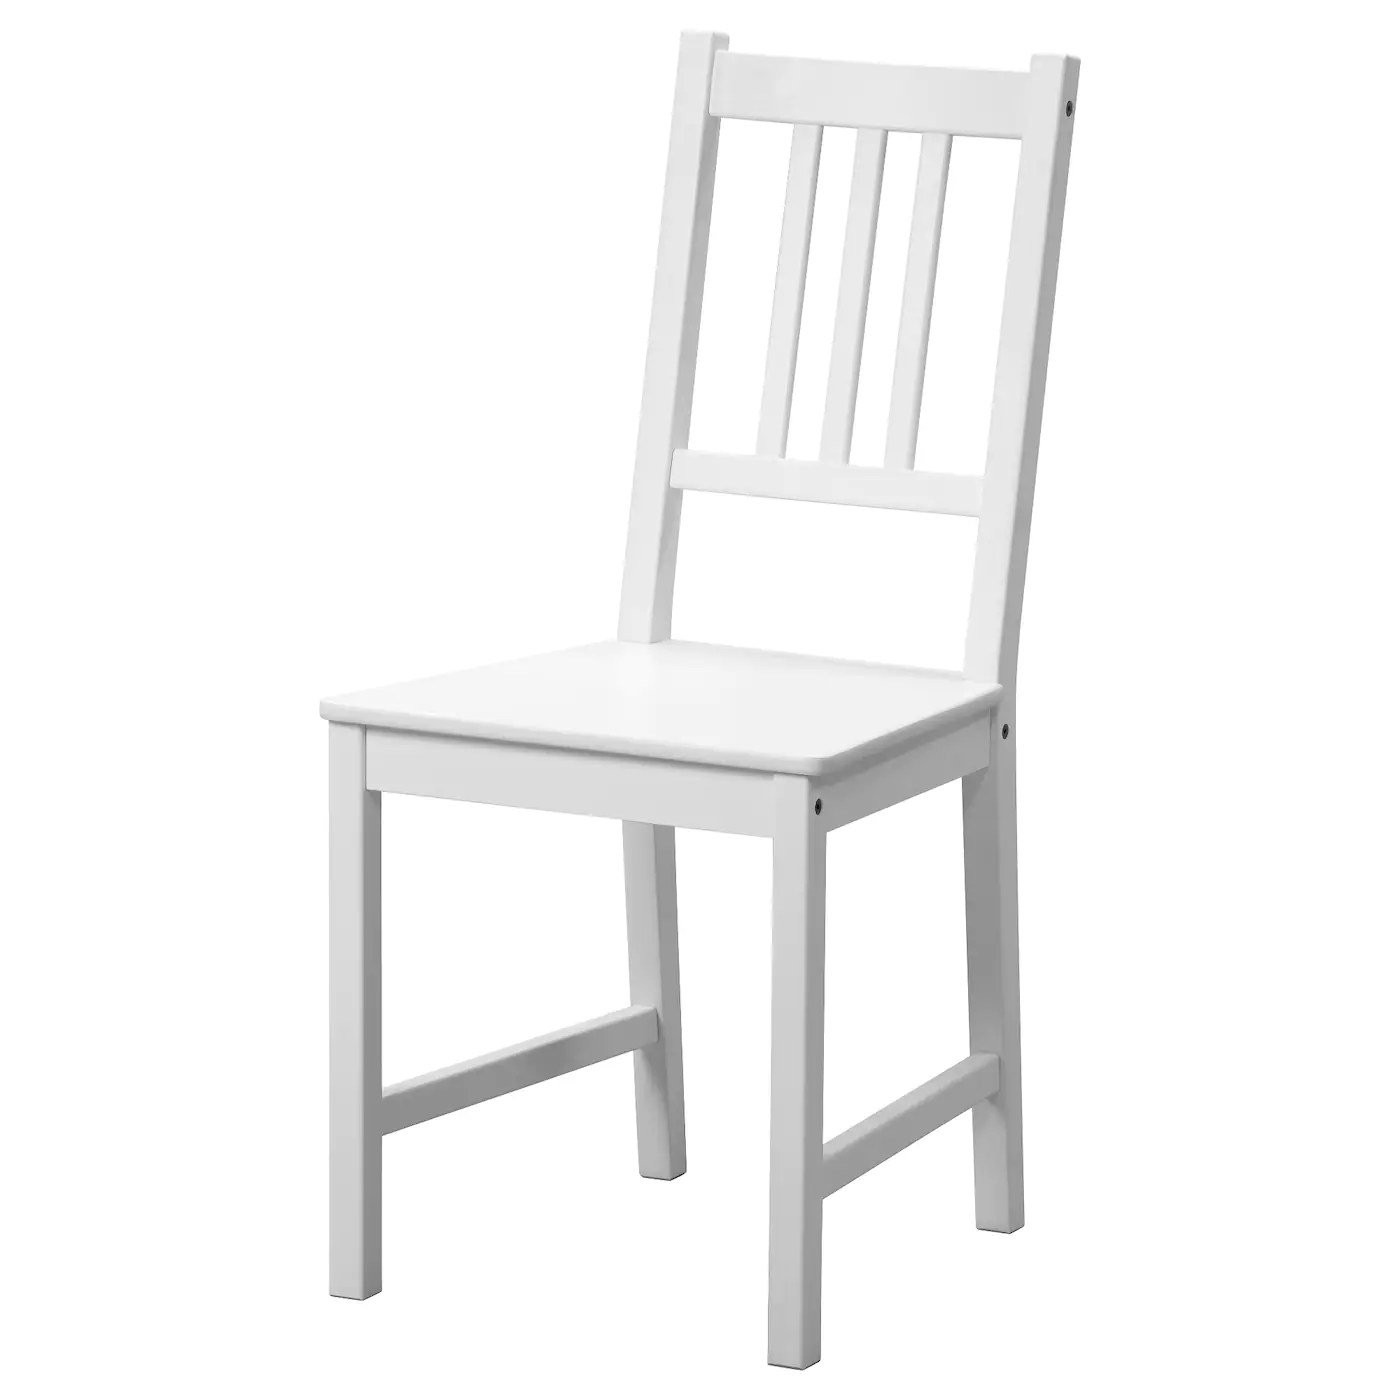 White Wood Chair Stefan Chair White Ikea